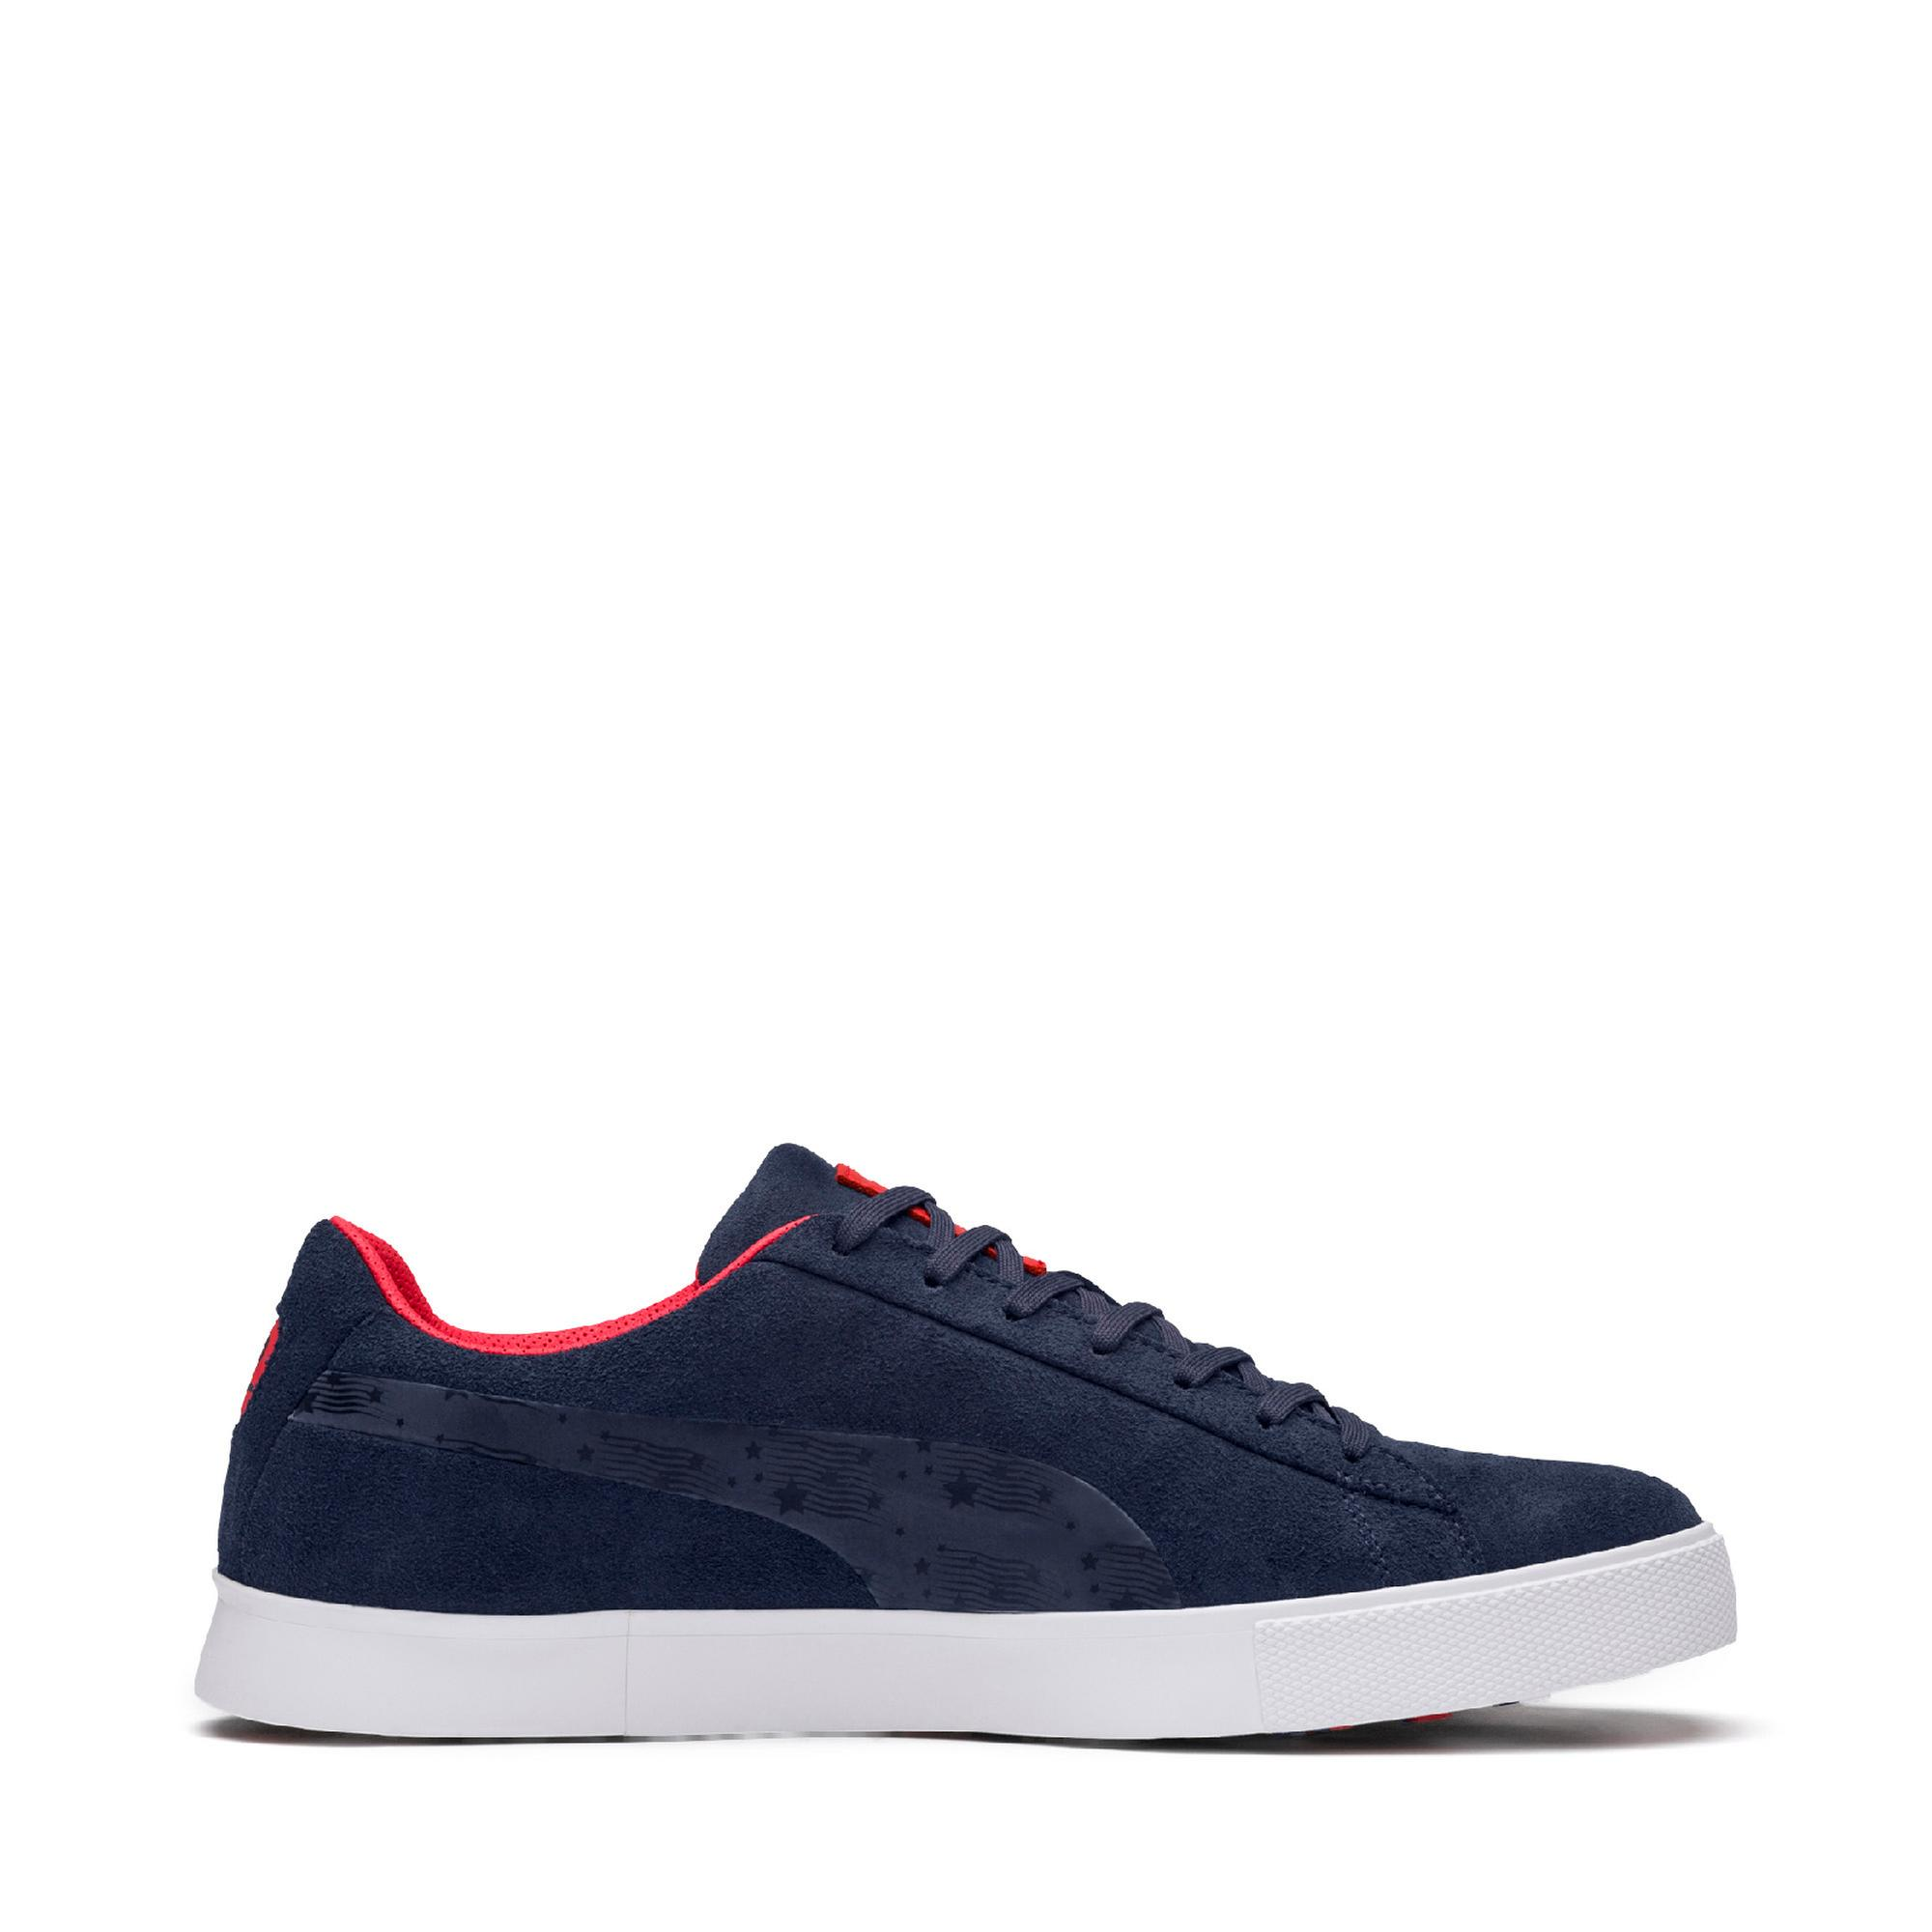 Men's Suede G Ryder US Spikeless Golf Shoe